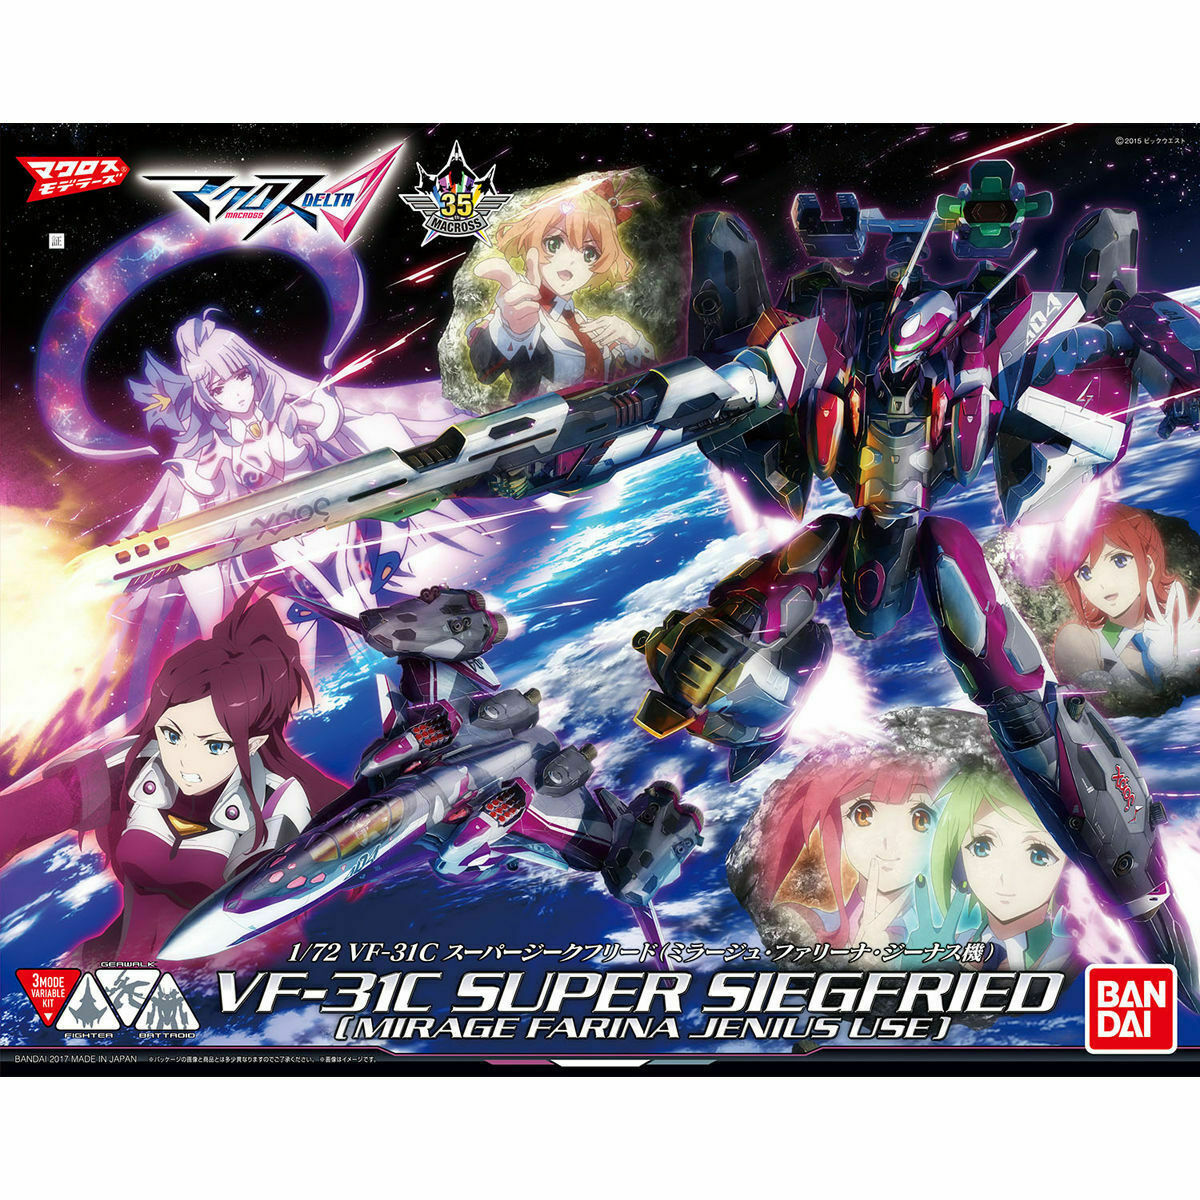 Bandai 1 72 Macross Delta Vf-31c Super Siegfried Mirage Farina Jenius Uso Kit